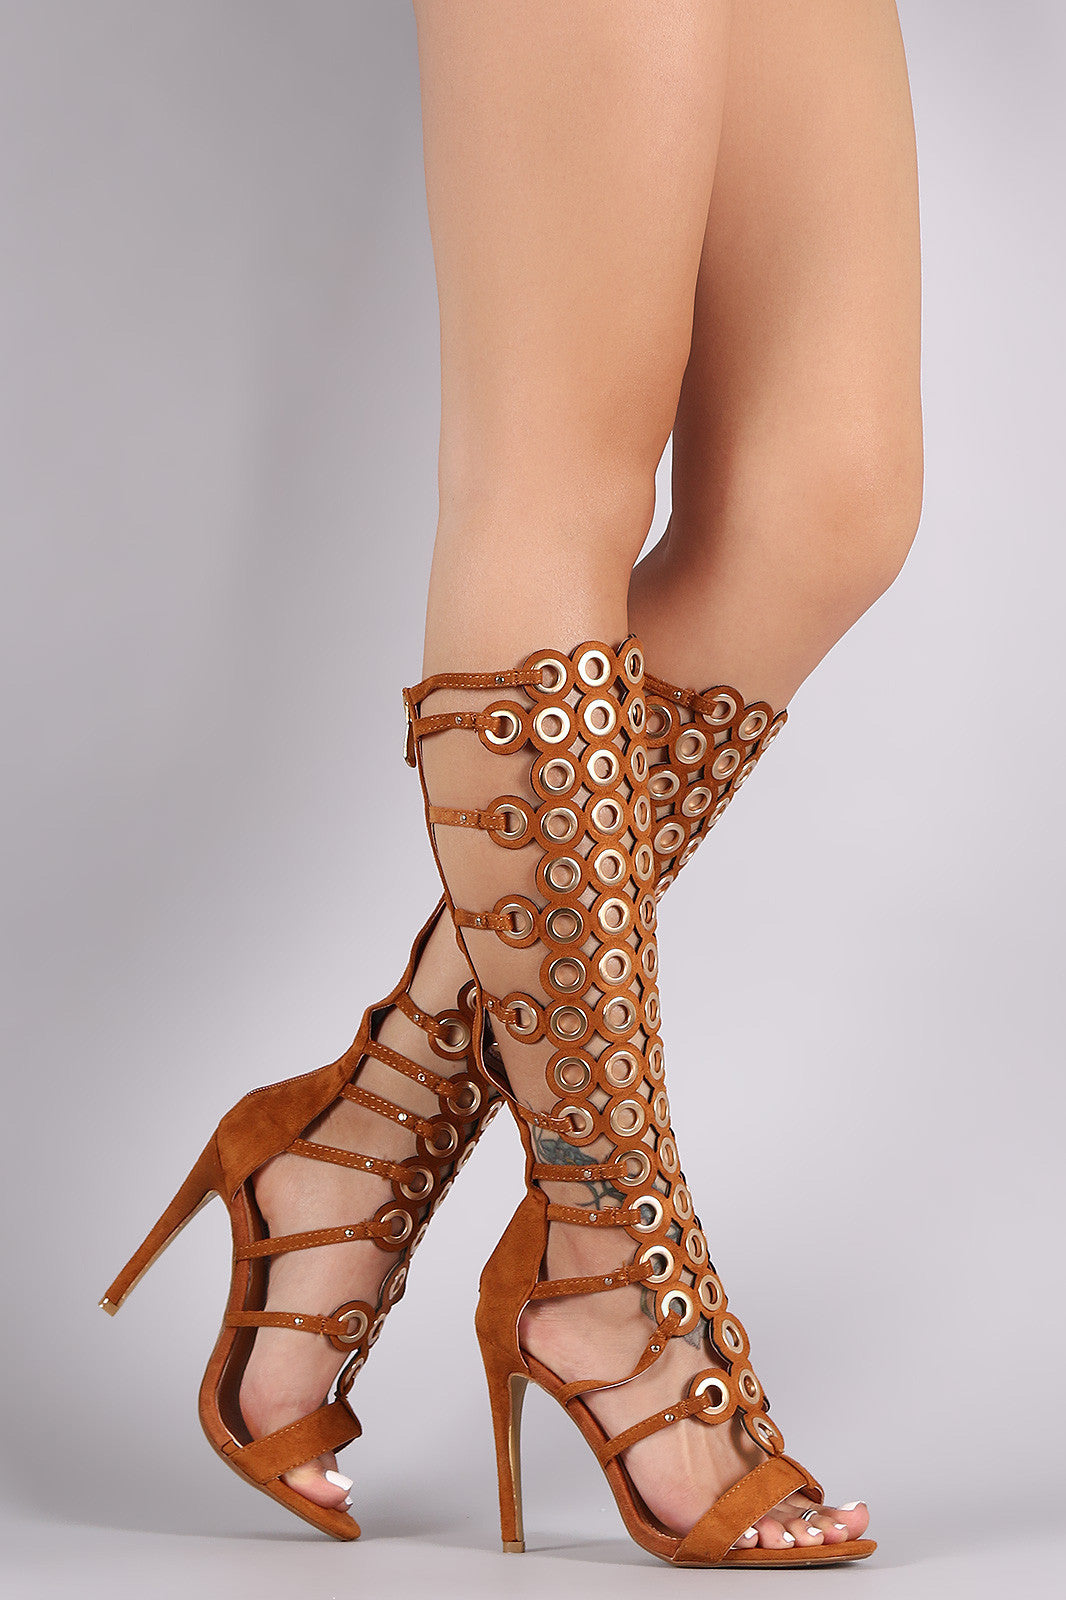 Suede Grommets Embellished Strappy Gladiator Heel - Thick 'N' Curvy Shop - 5